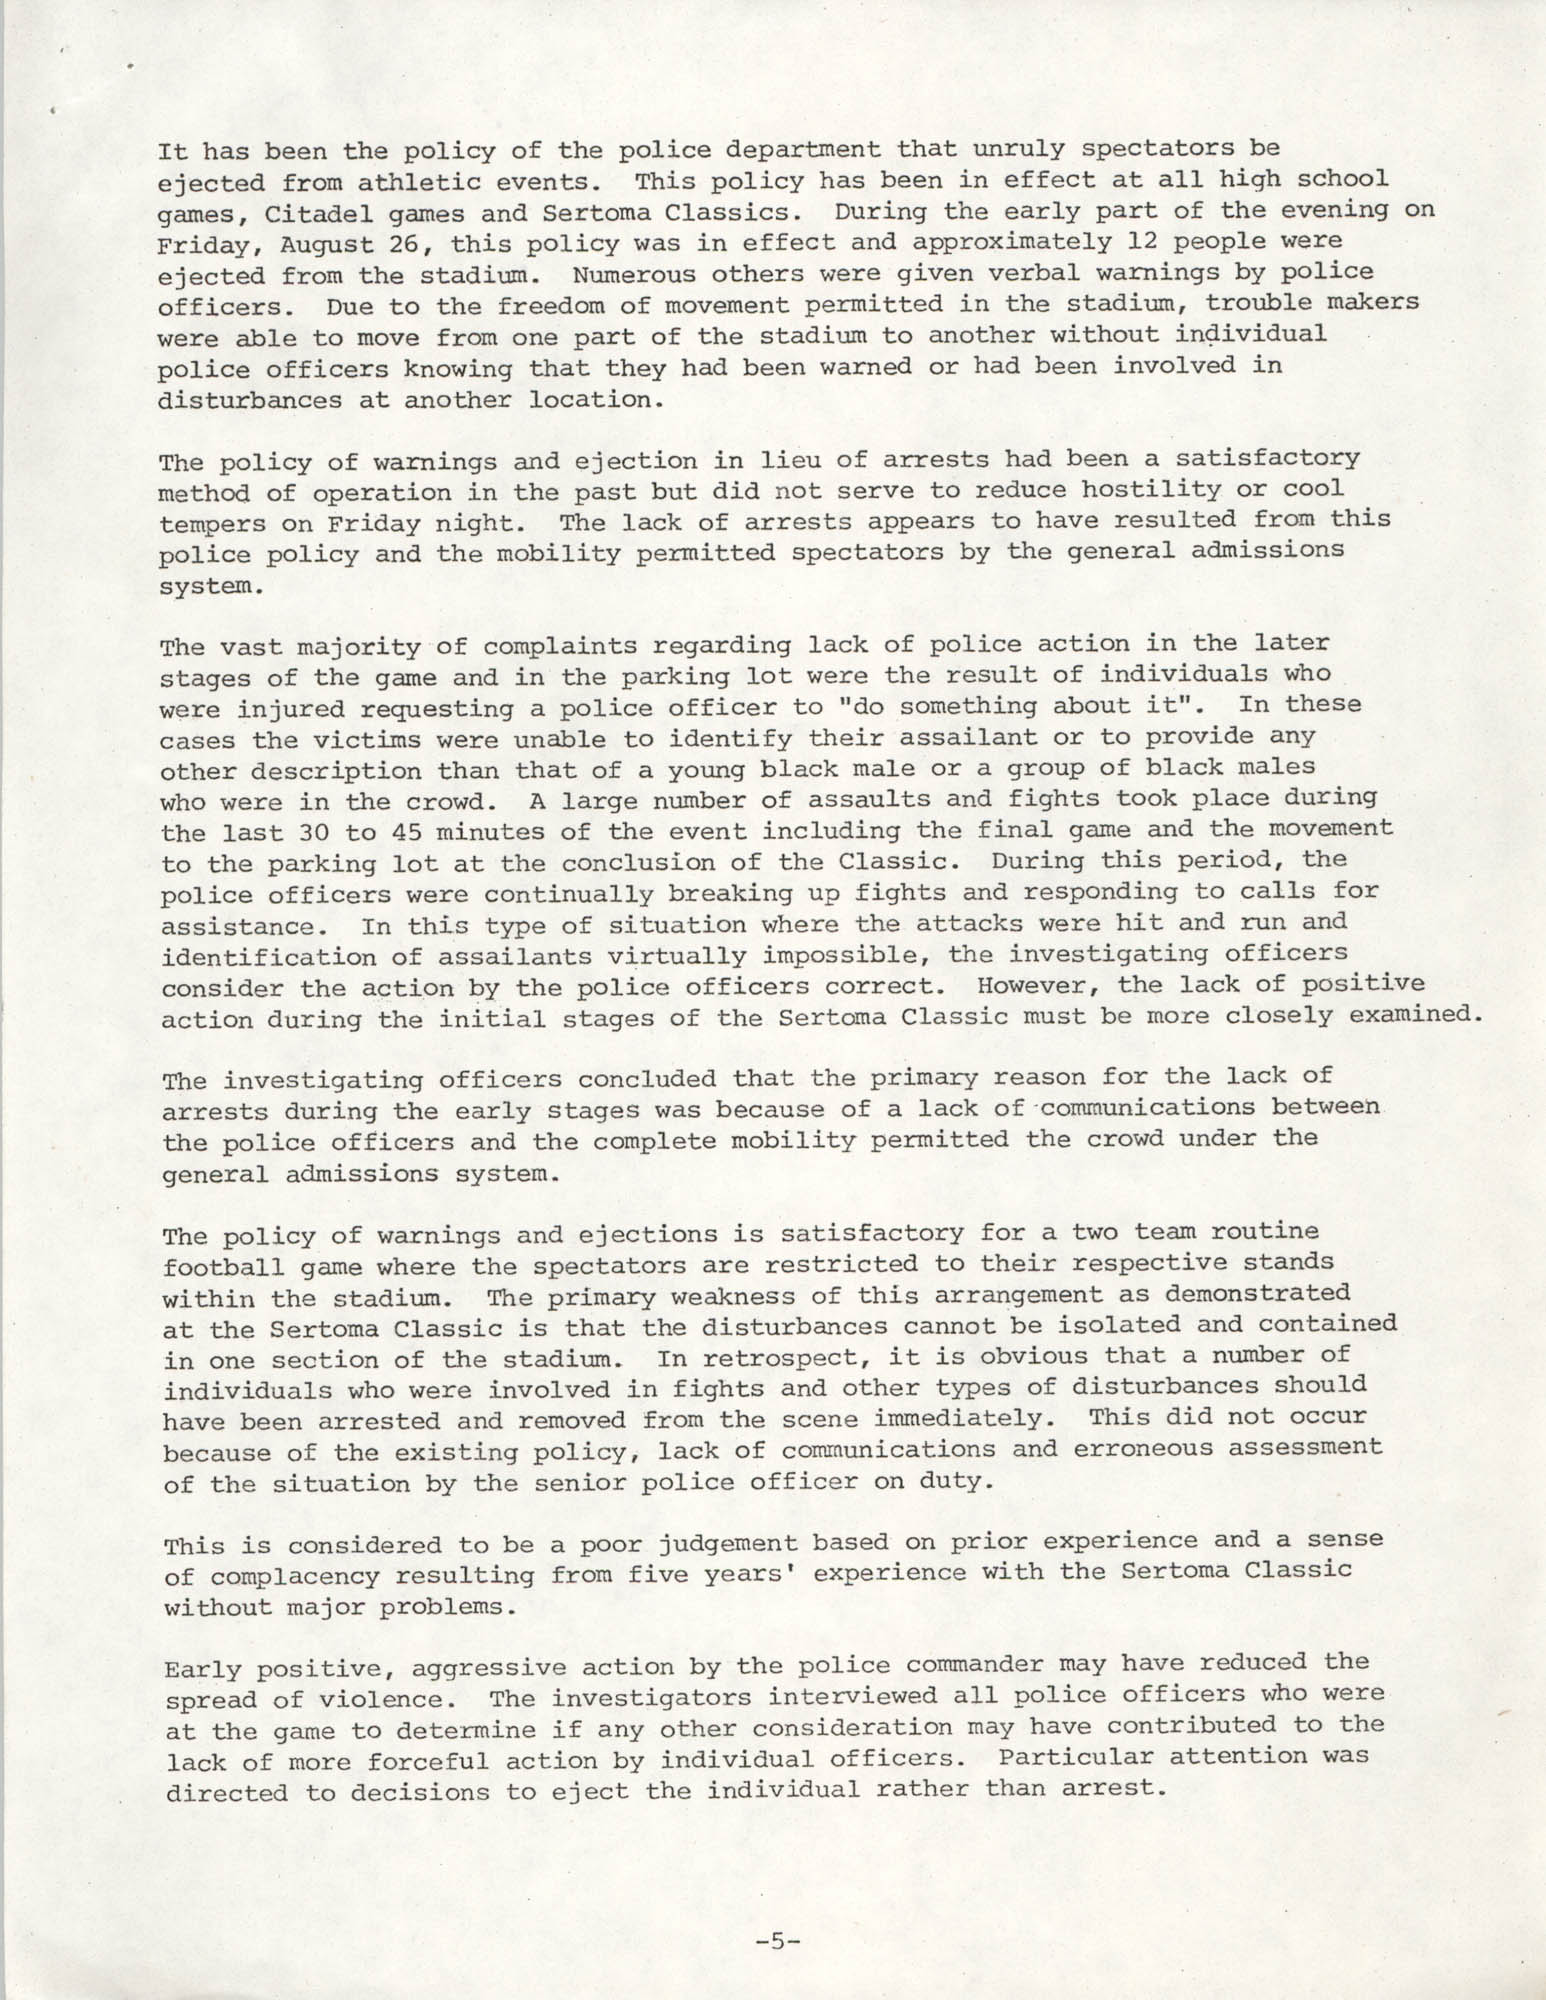 City of Charleston South Carolina Police Department Memorandum, September 6, 1977, Page 5